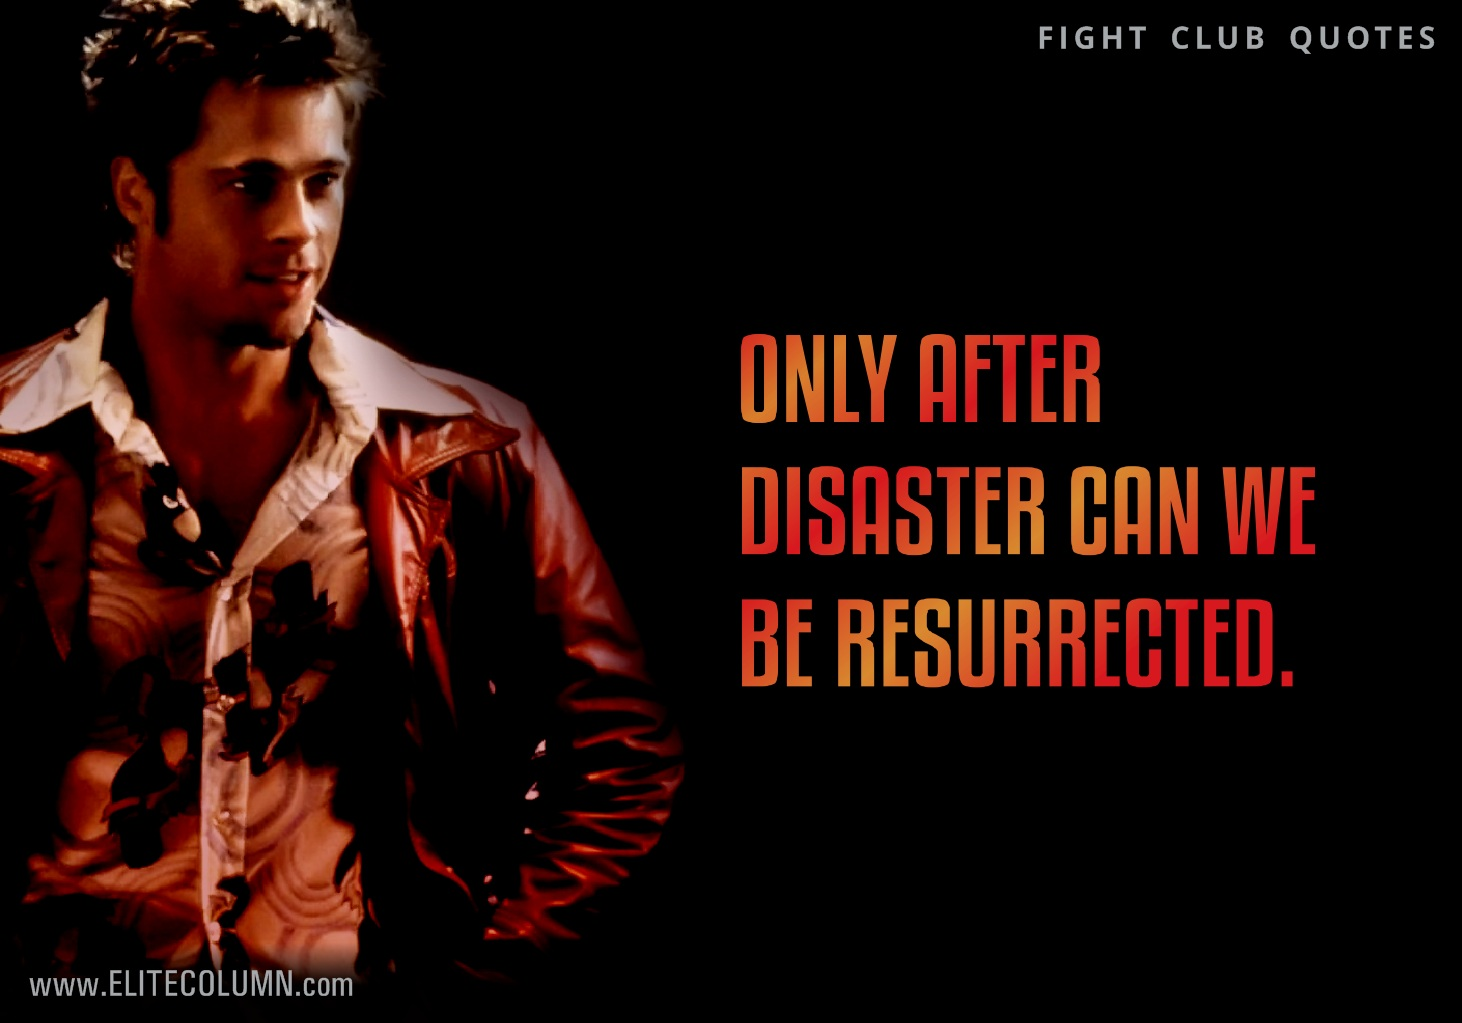 Fight Club Quotes (3)